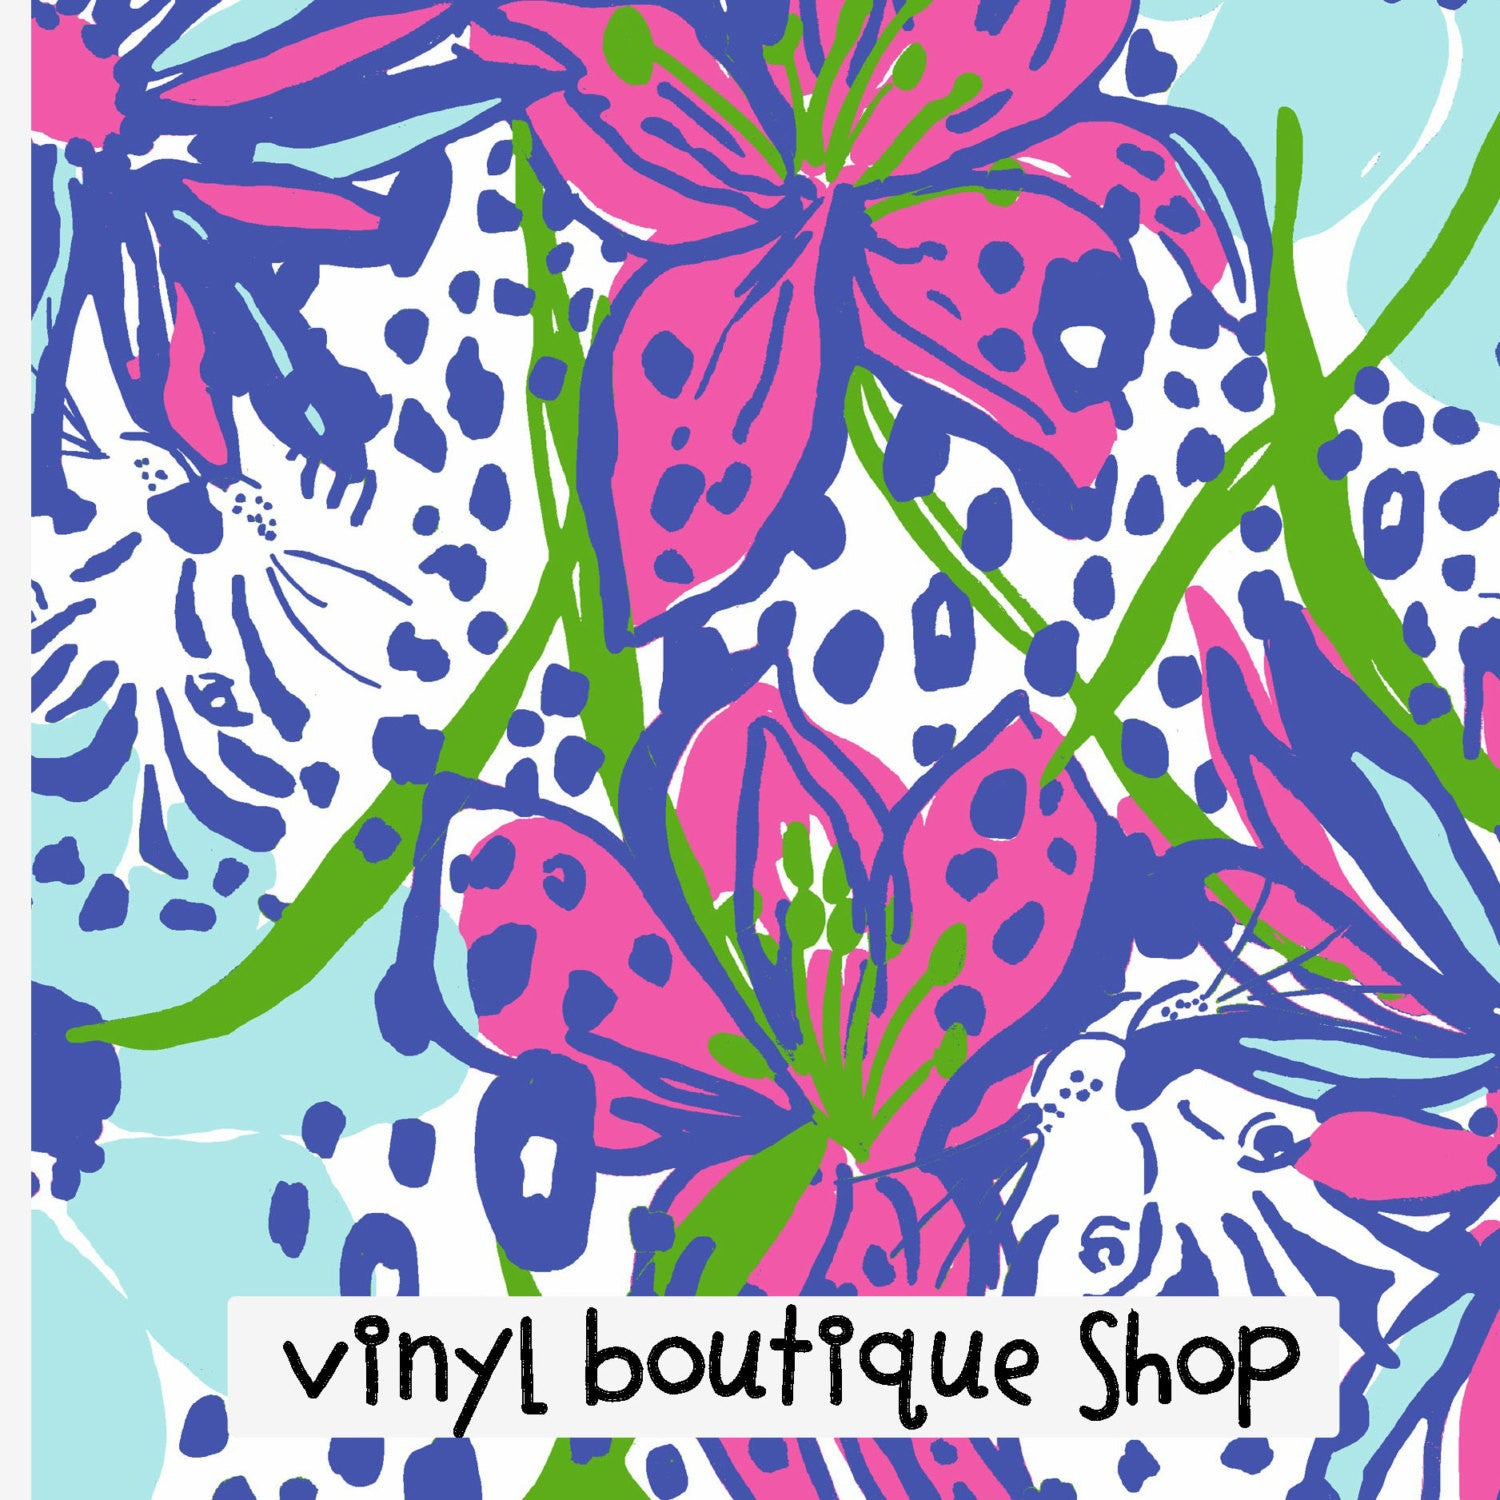 In The Garden Lilly Inspired Printed Patterned Craft Vinyl - Vinyl Boutique Shop